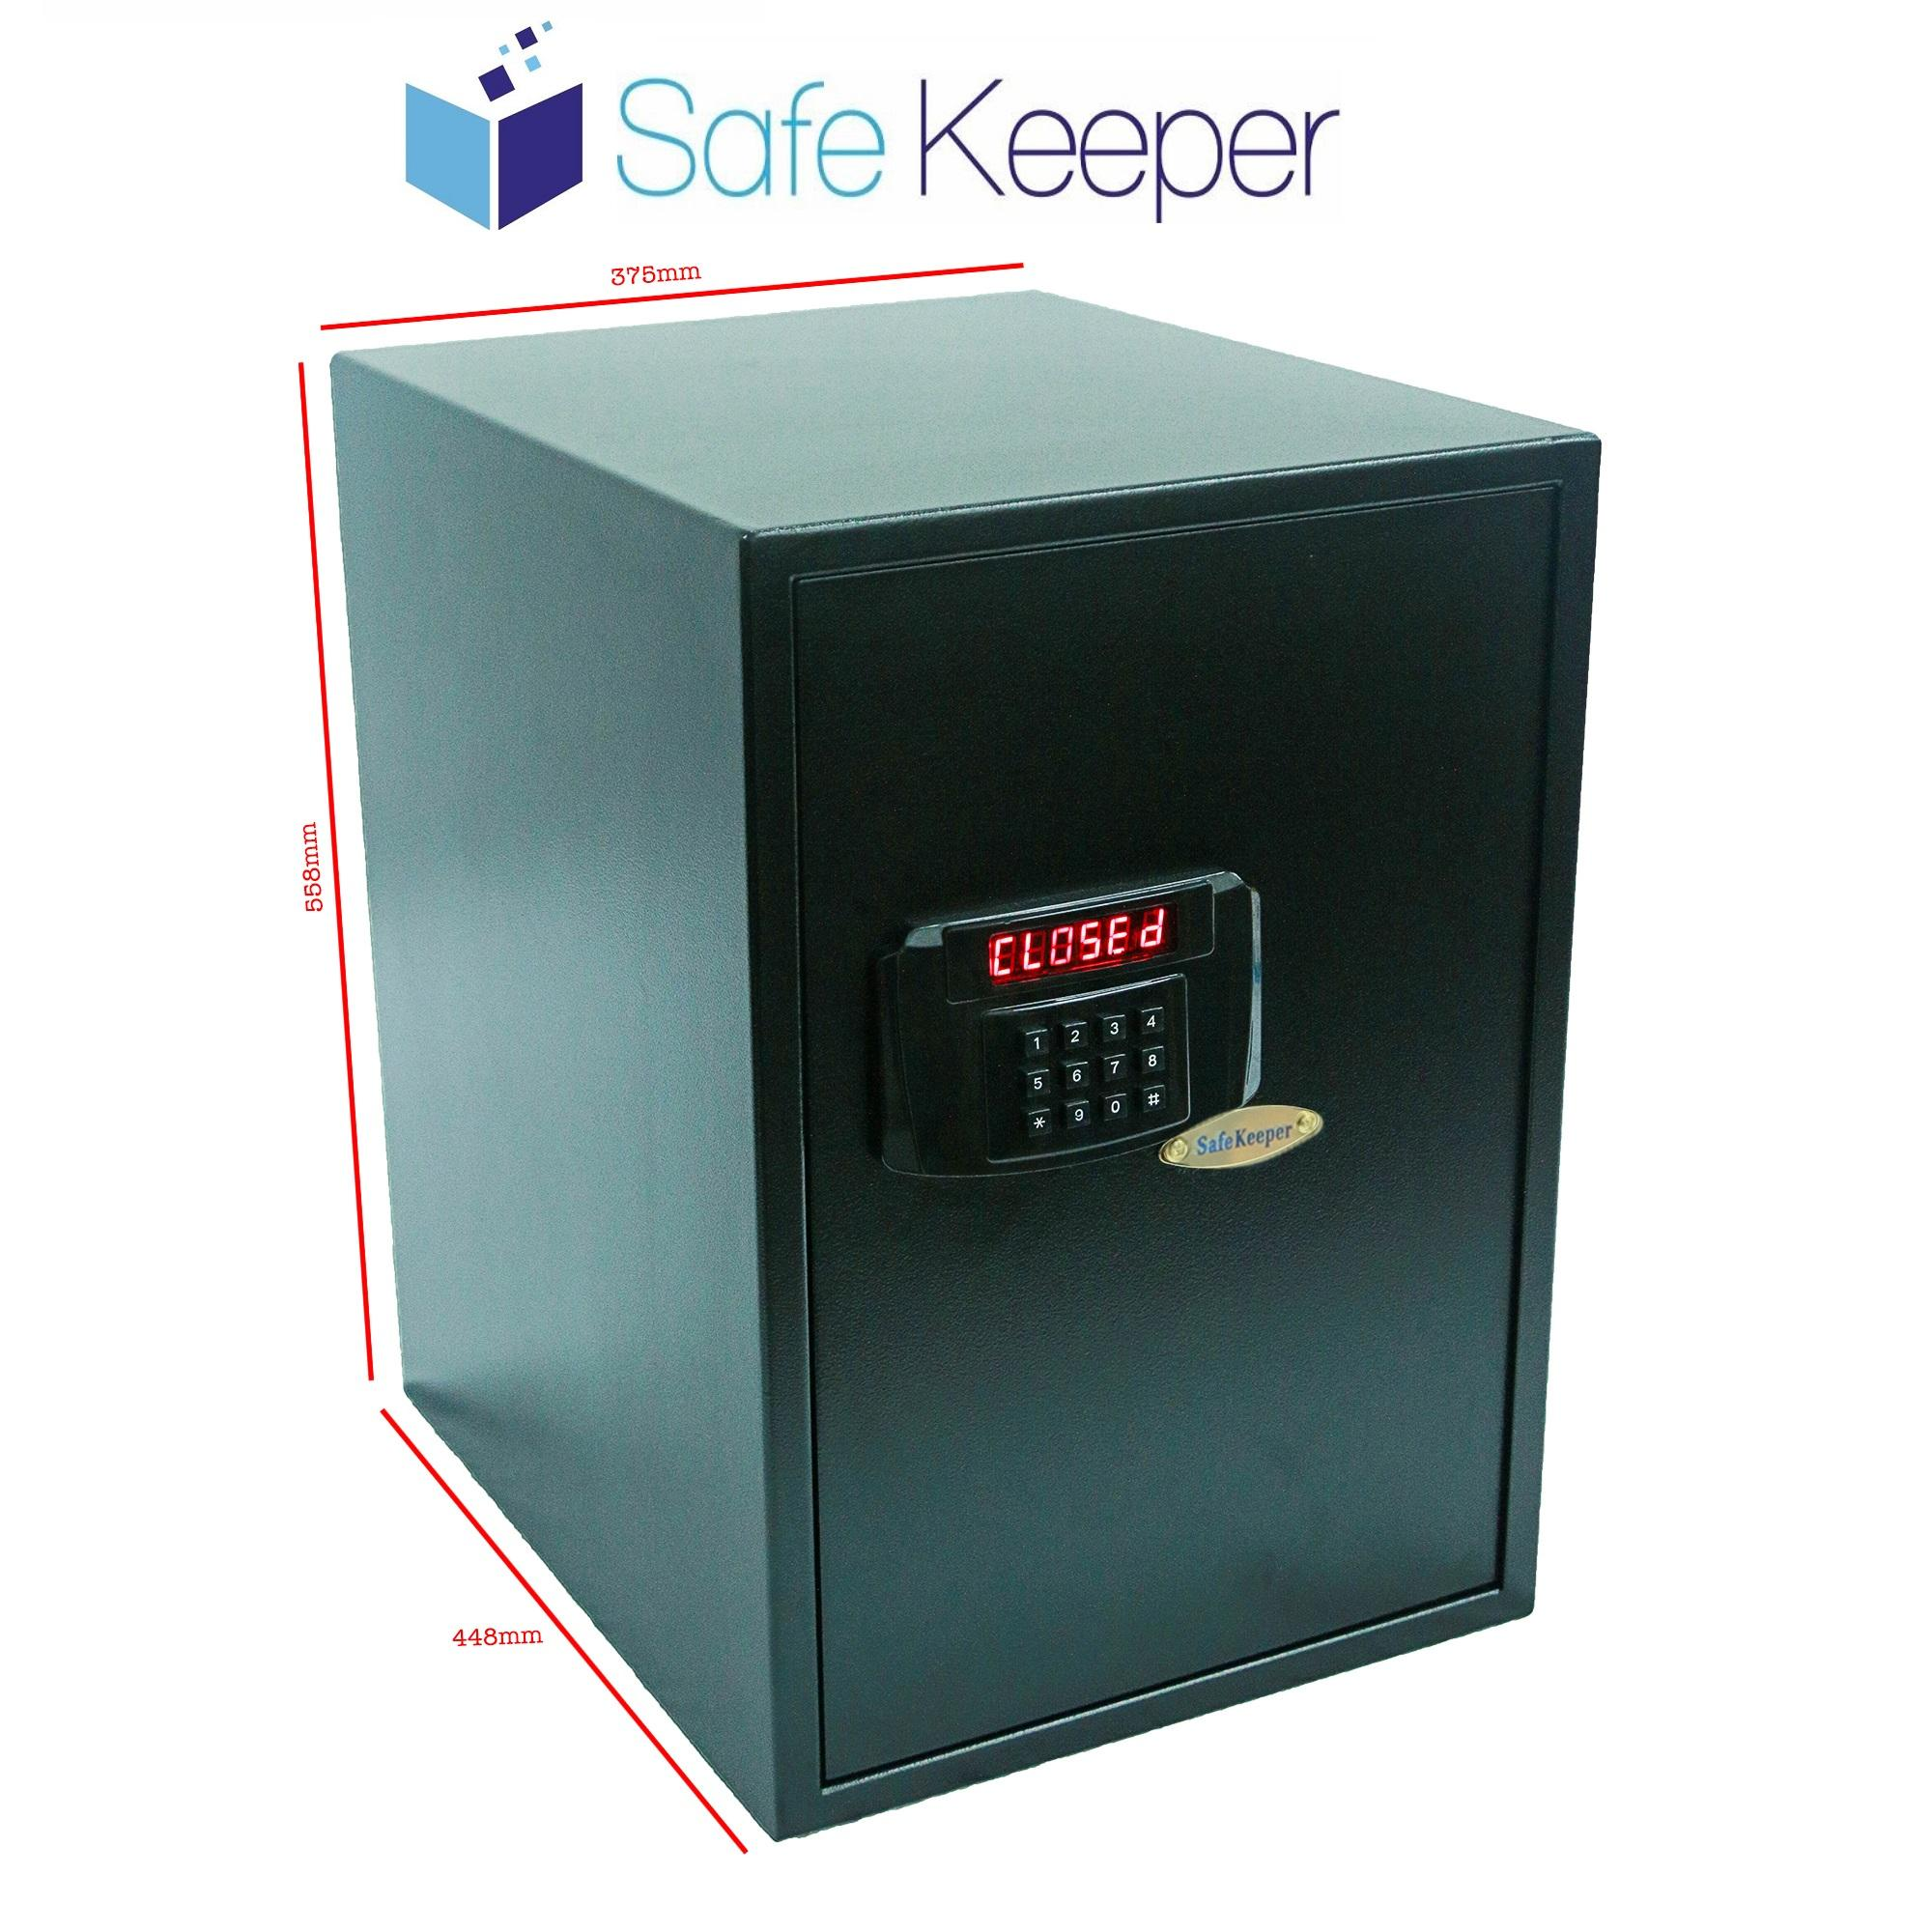 SafeKeeper SK5637 XL Safe (100% Brand New Product) (Usual Price @ $368.00) But Now!!!!Promotion @ $298.00 ( Save $70 )  (Color: Black)~ Local SG Seller ~ Ready Stocks~ 3-5 Working Days!